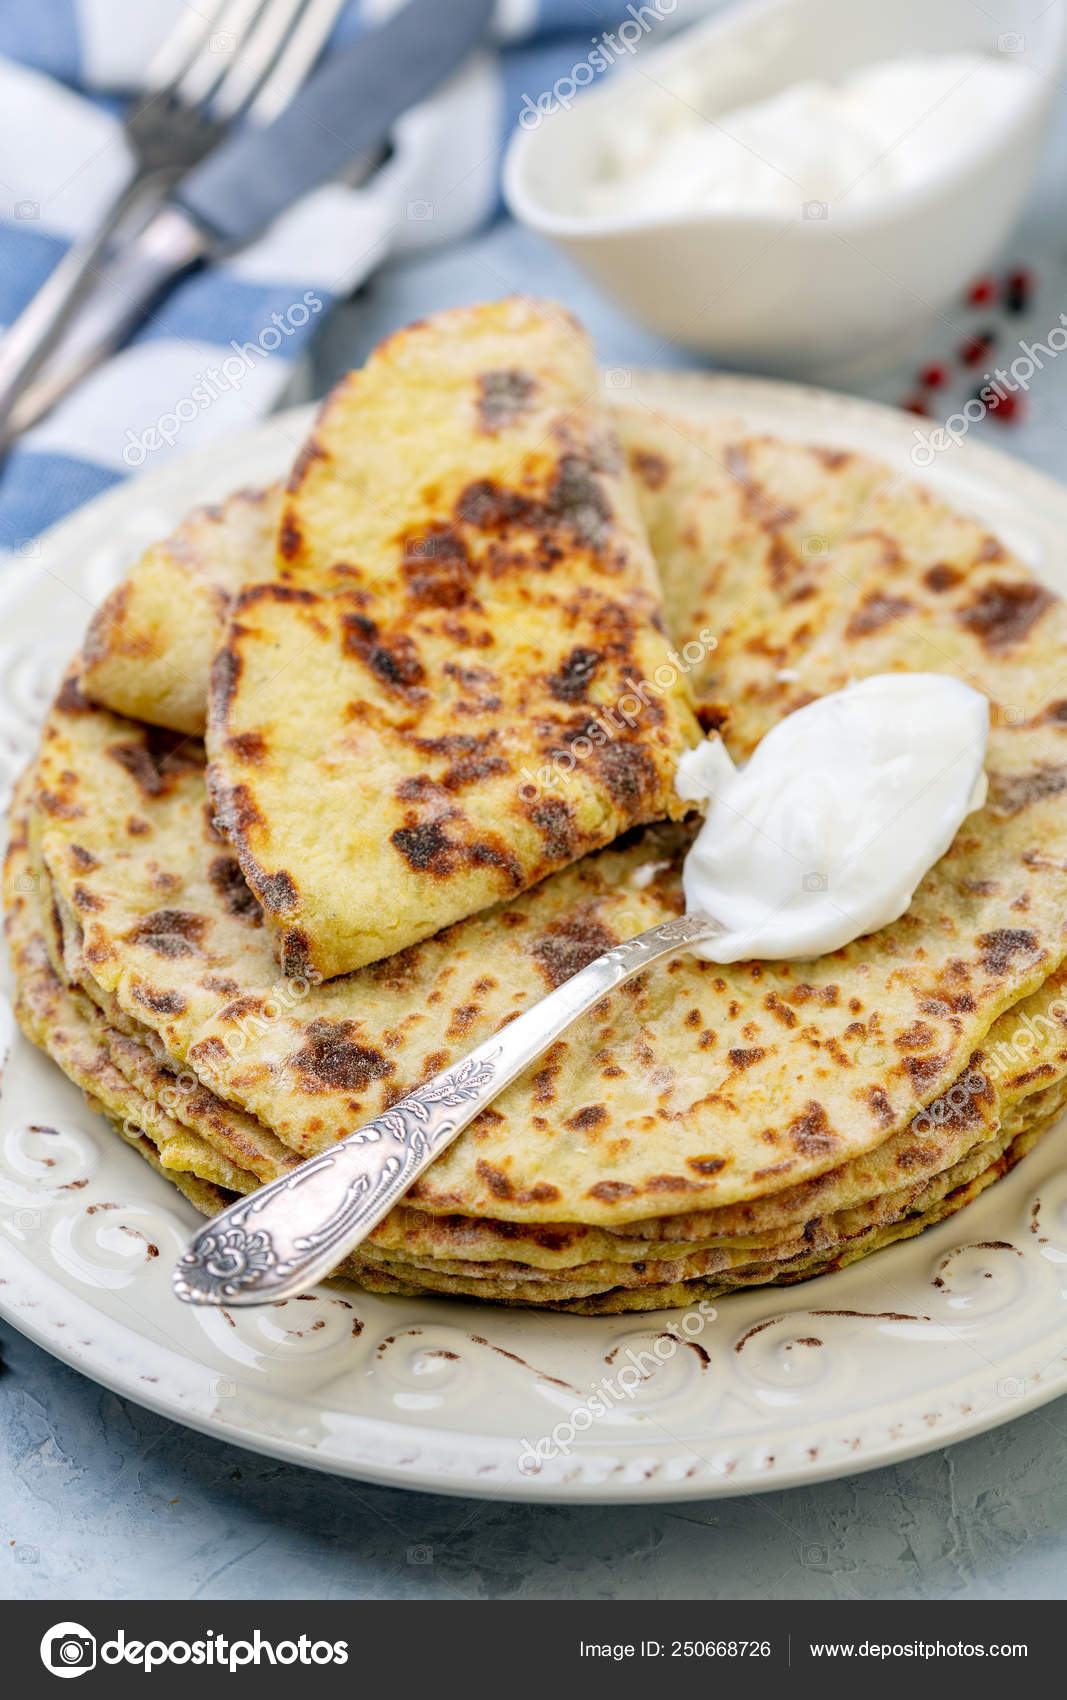 Potato Pancakes Lefse Norwegian Cuisine Stock Photo C Sriba3 250668726